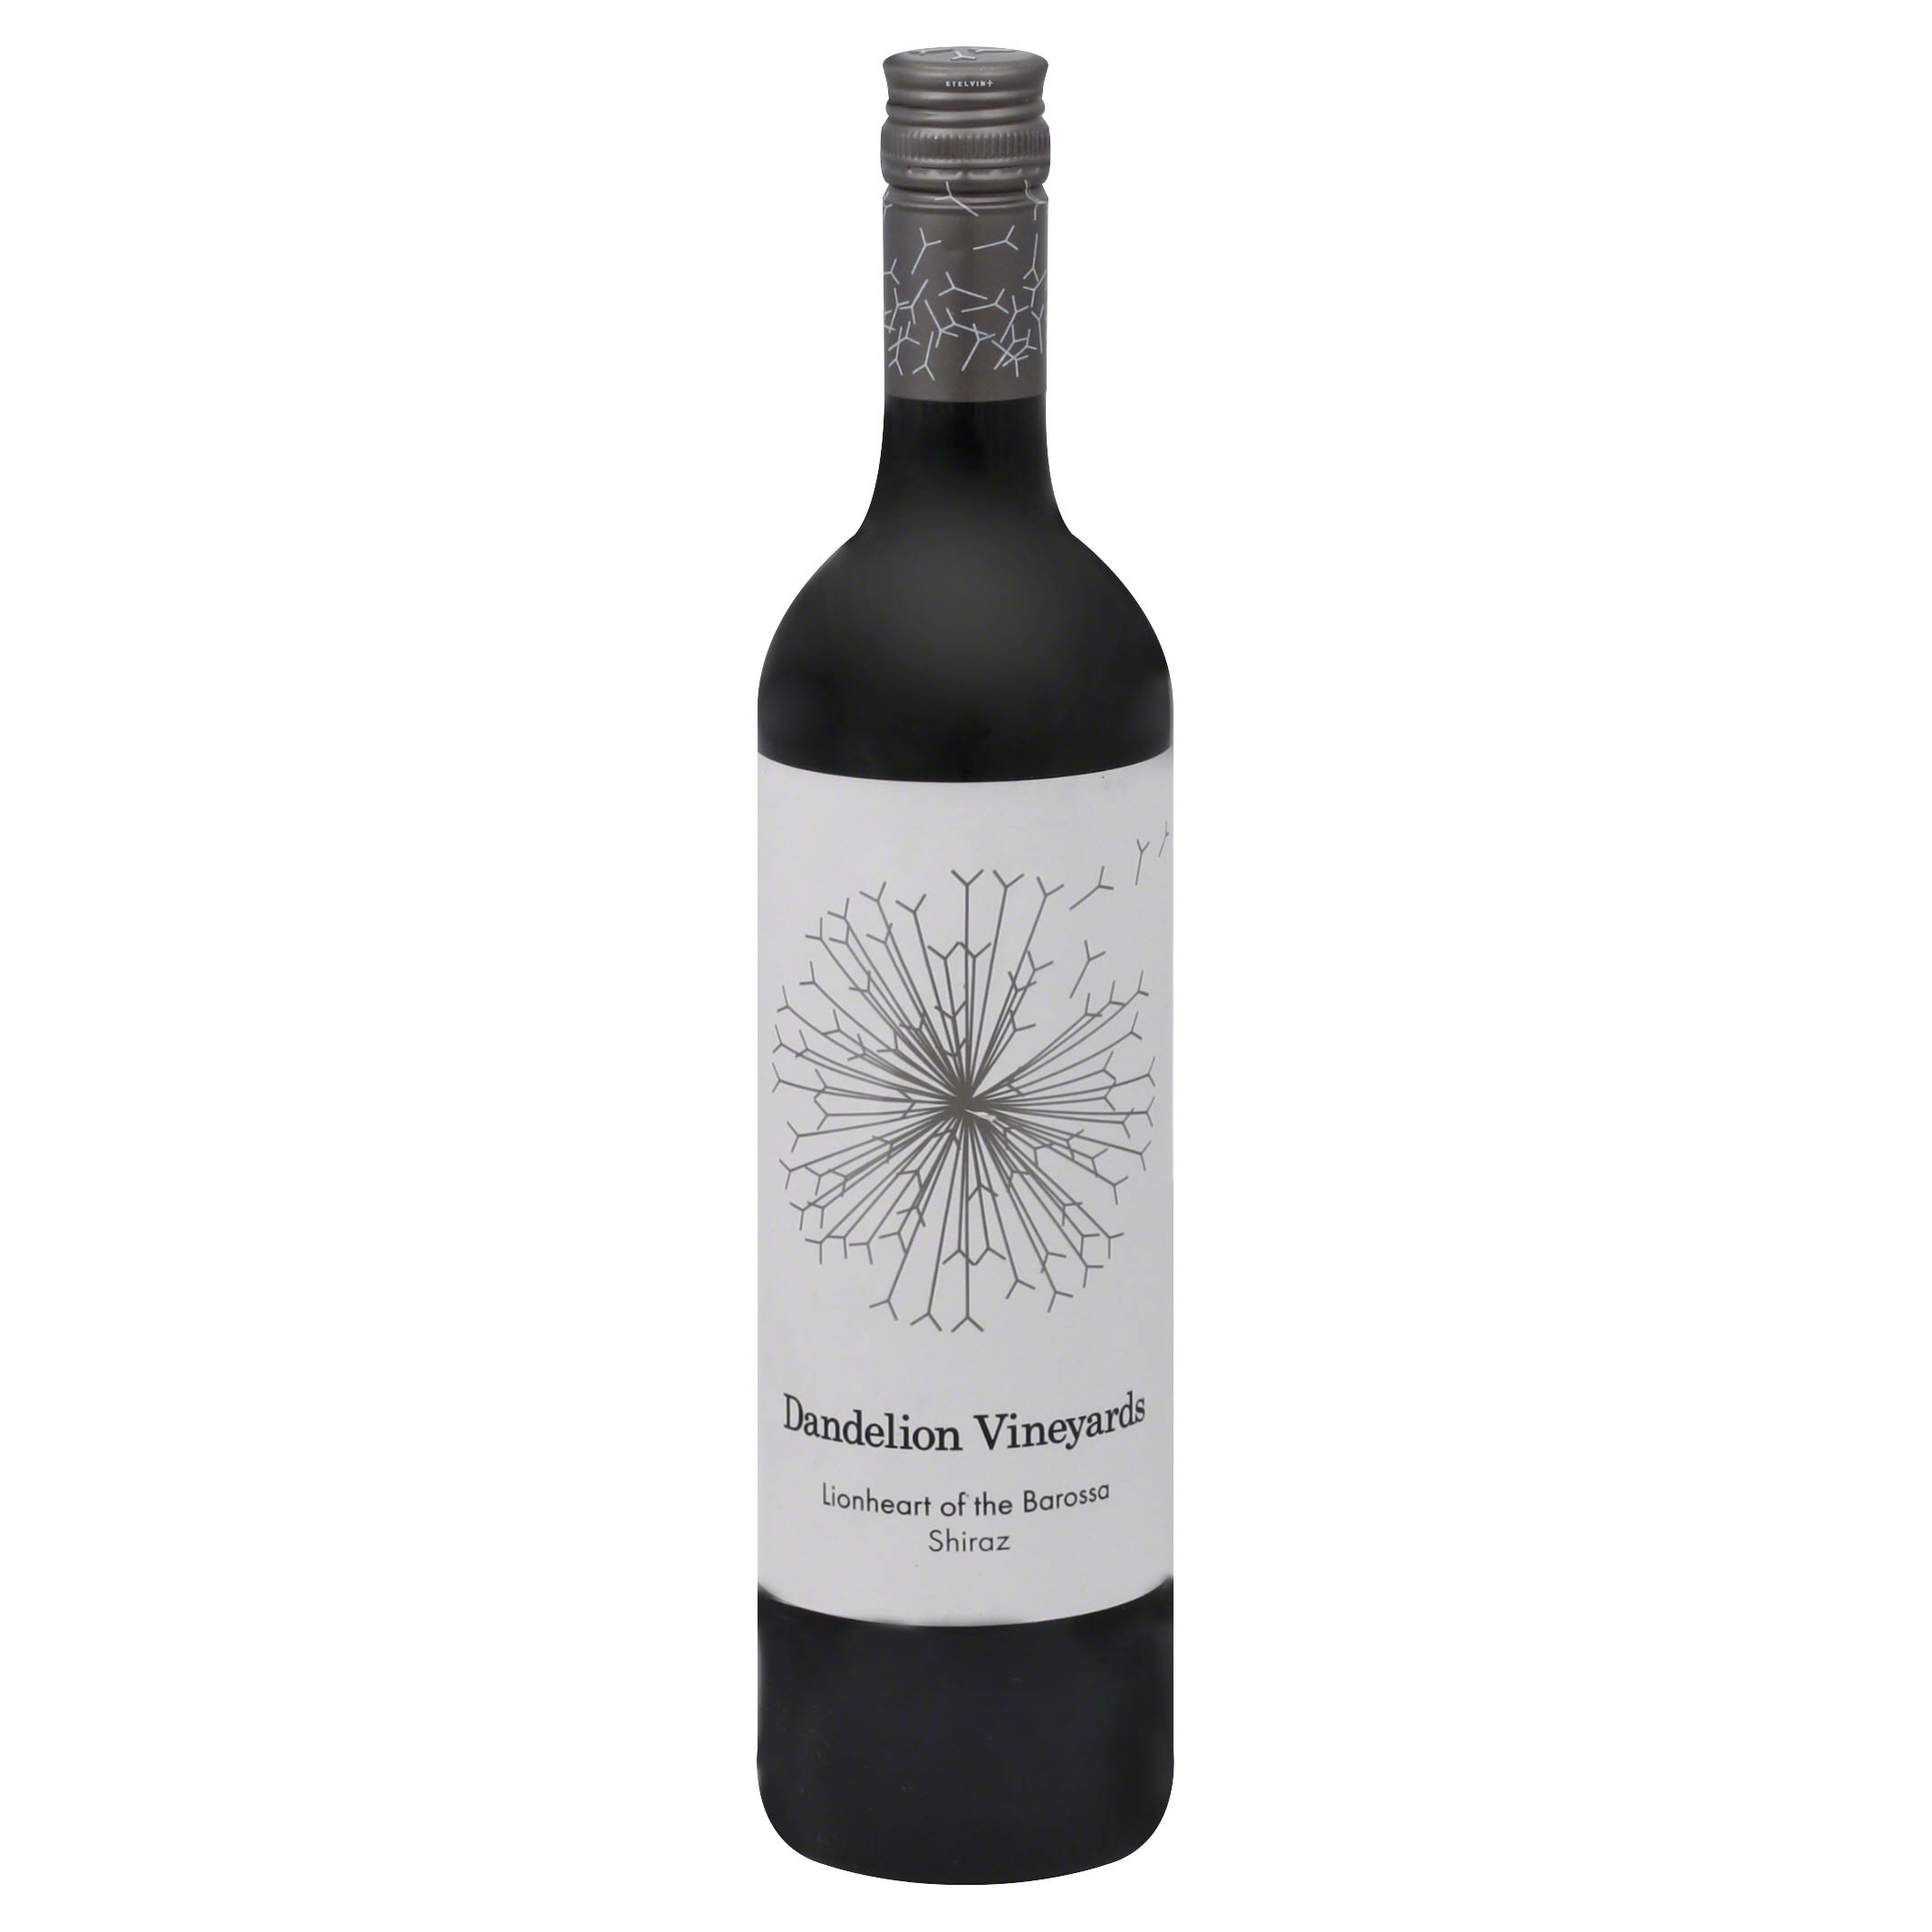 Dandelion Vineyards Shiraz, Lionheart of the Barossa, 2010 - 750 ml